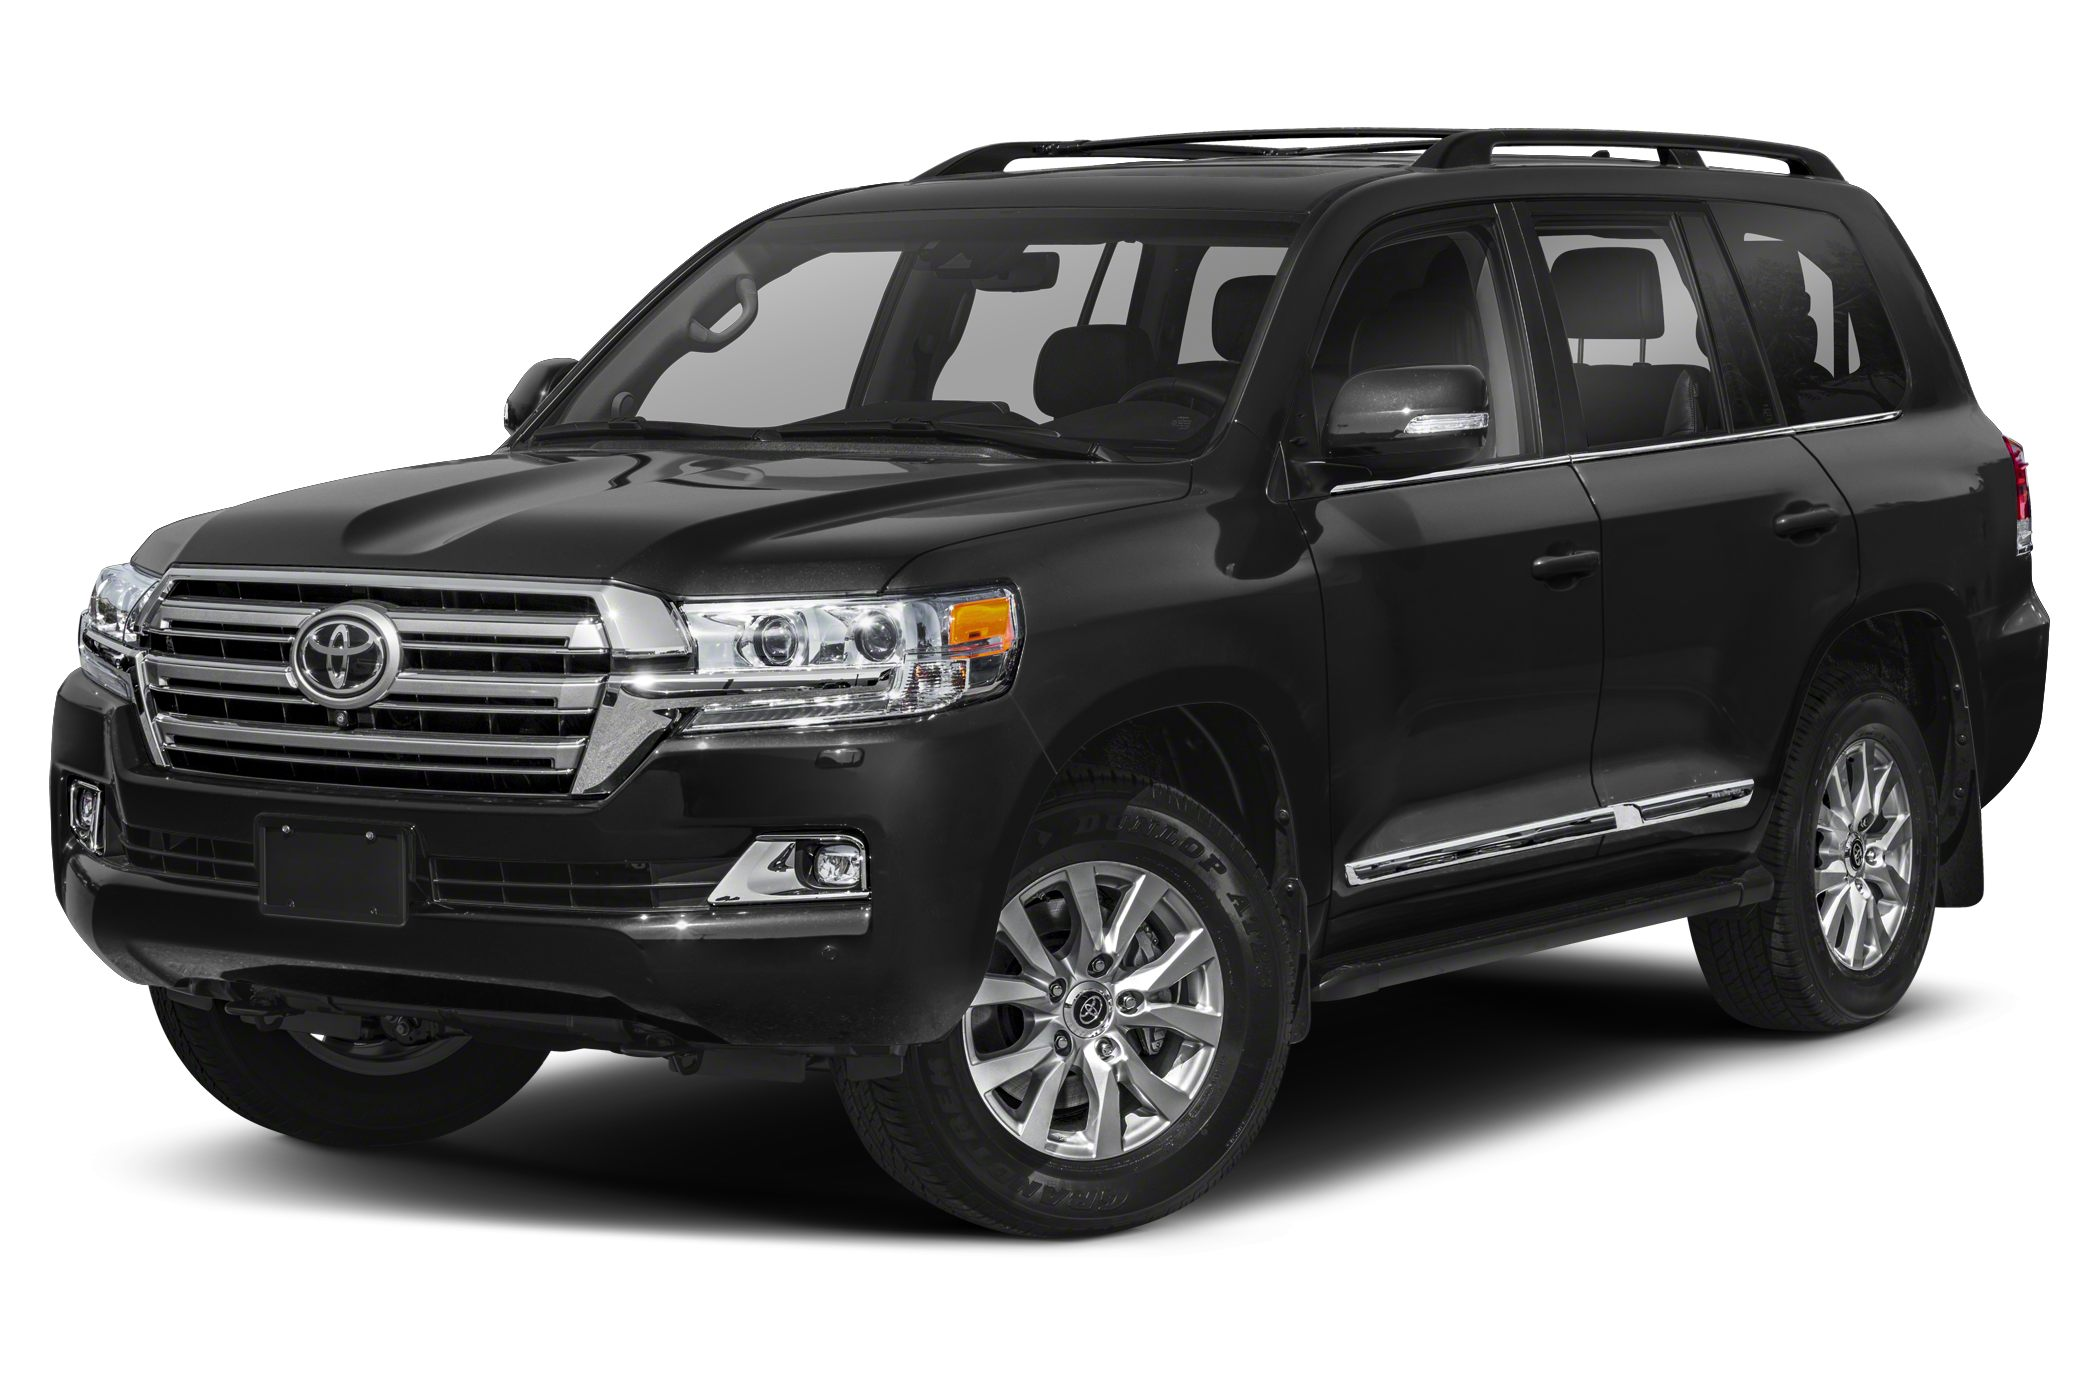 2019 Toyota Land Cruiser V8 4dr 4x4 Specs and Prices